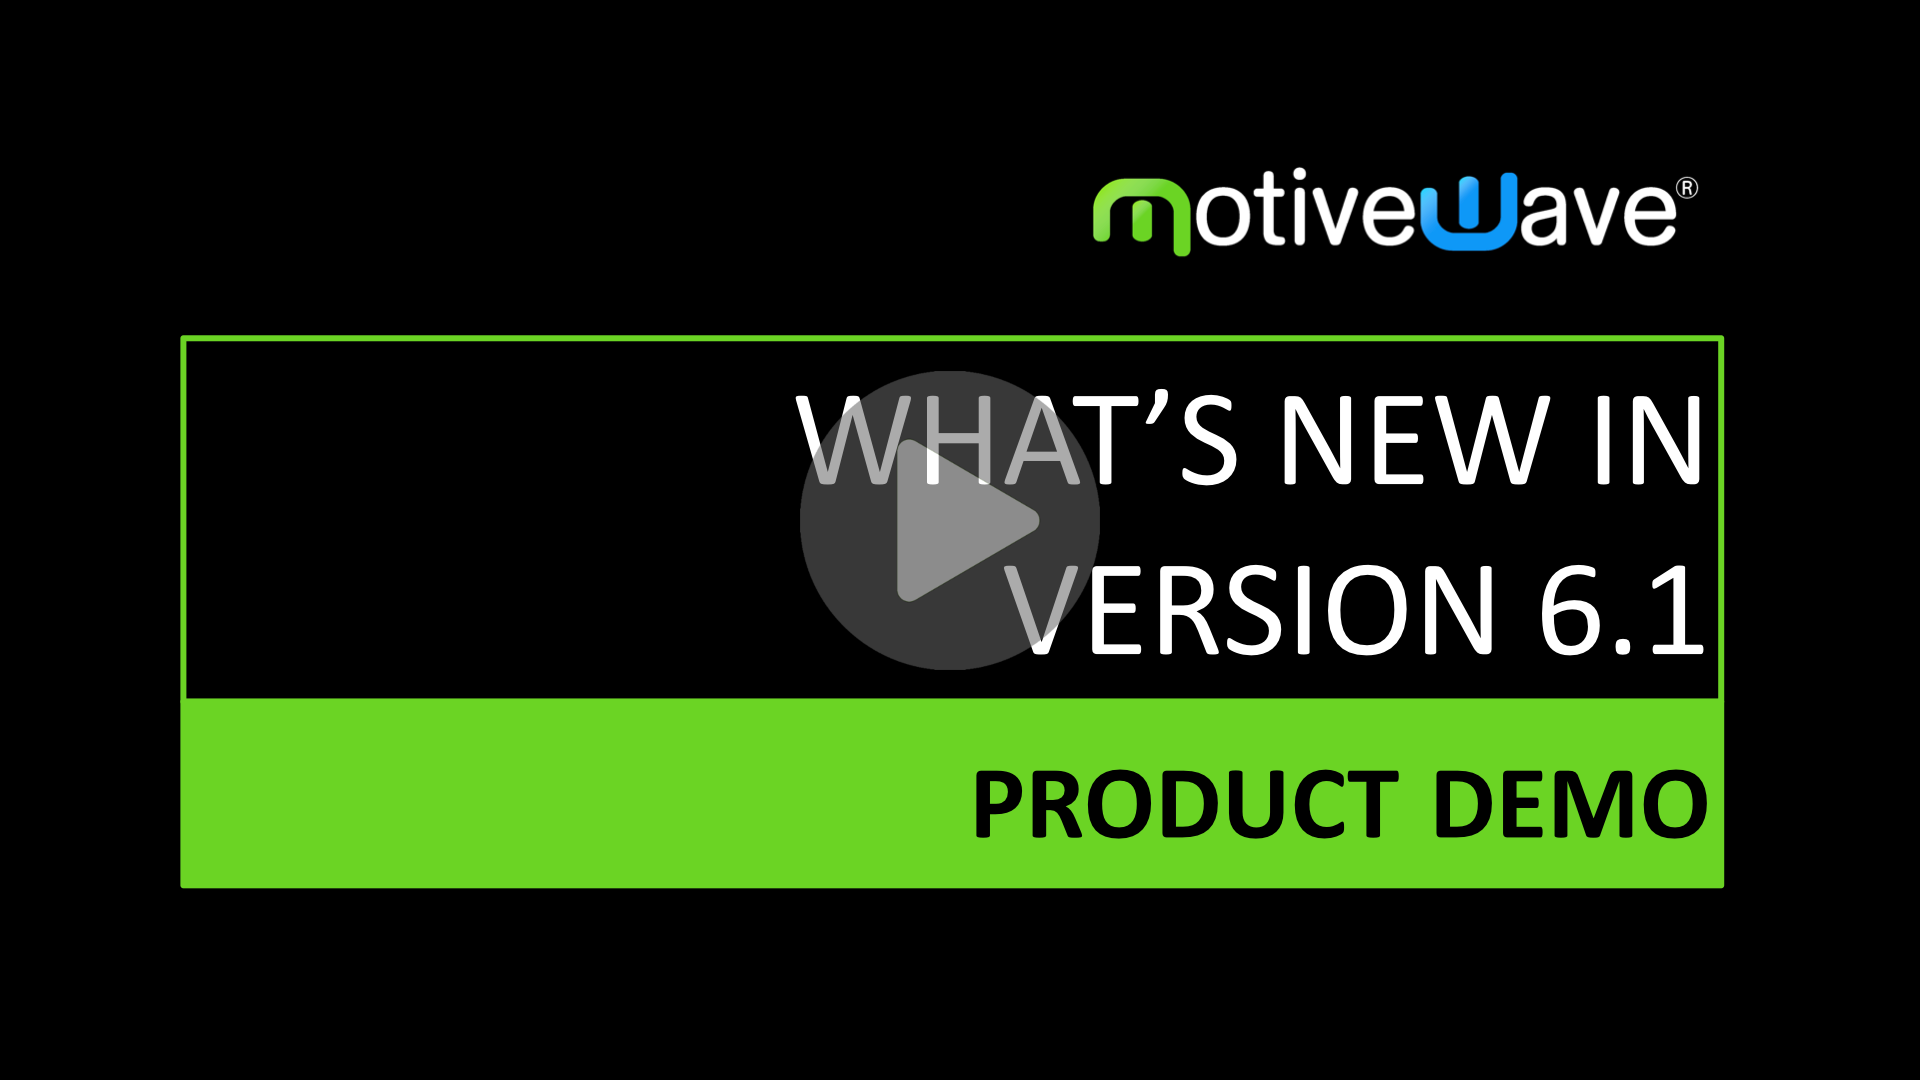 What's New in Version 6.1 video